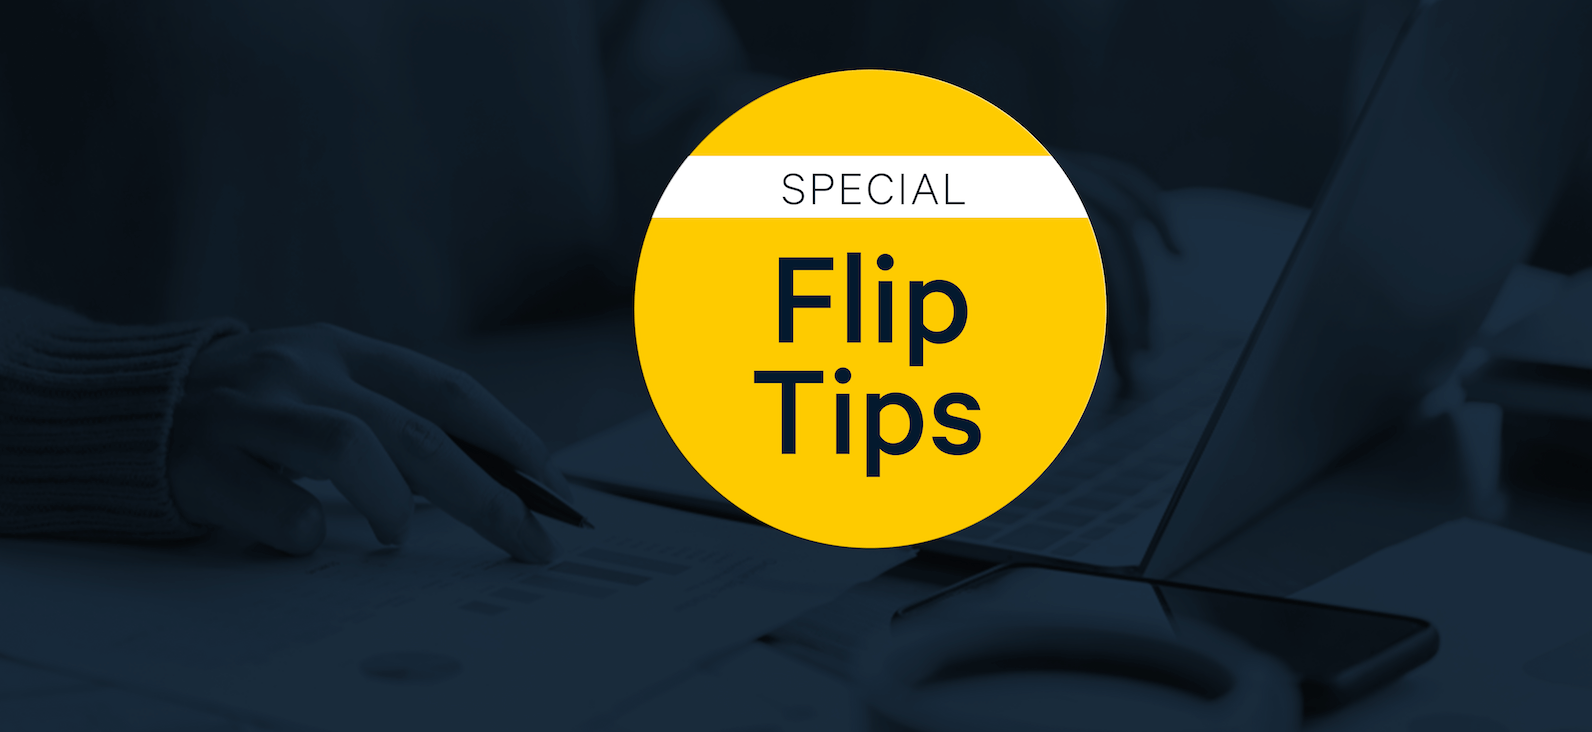 Real Estate During the Pandemic: Flip Tips